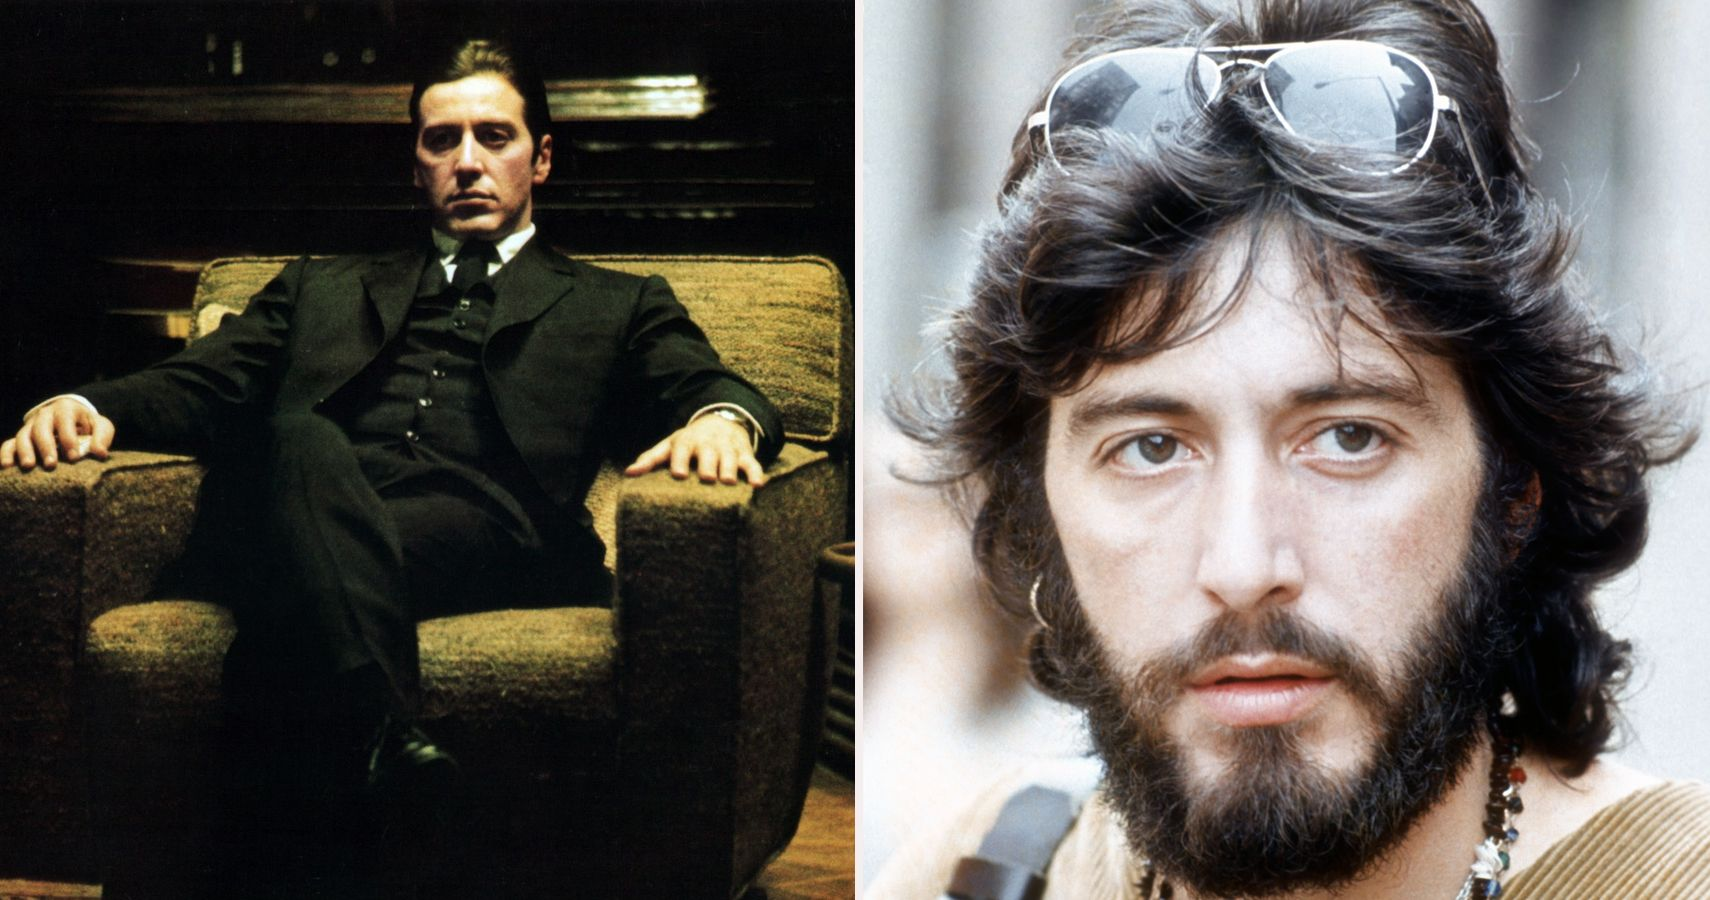 Al Pacino's 10 Best Movies, According To Rotten Tomatoes